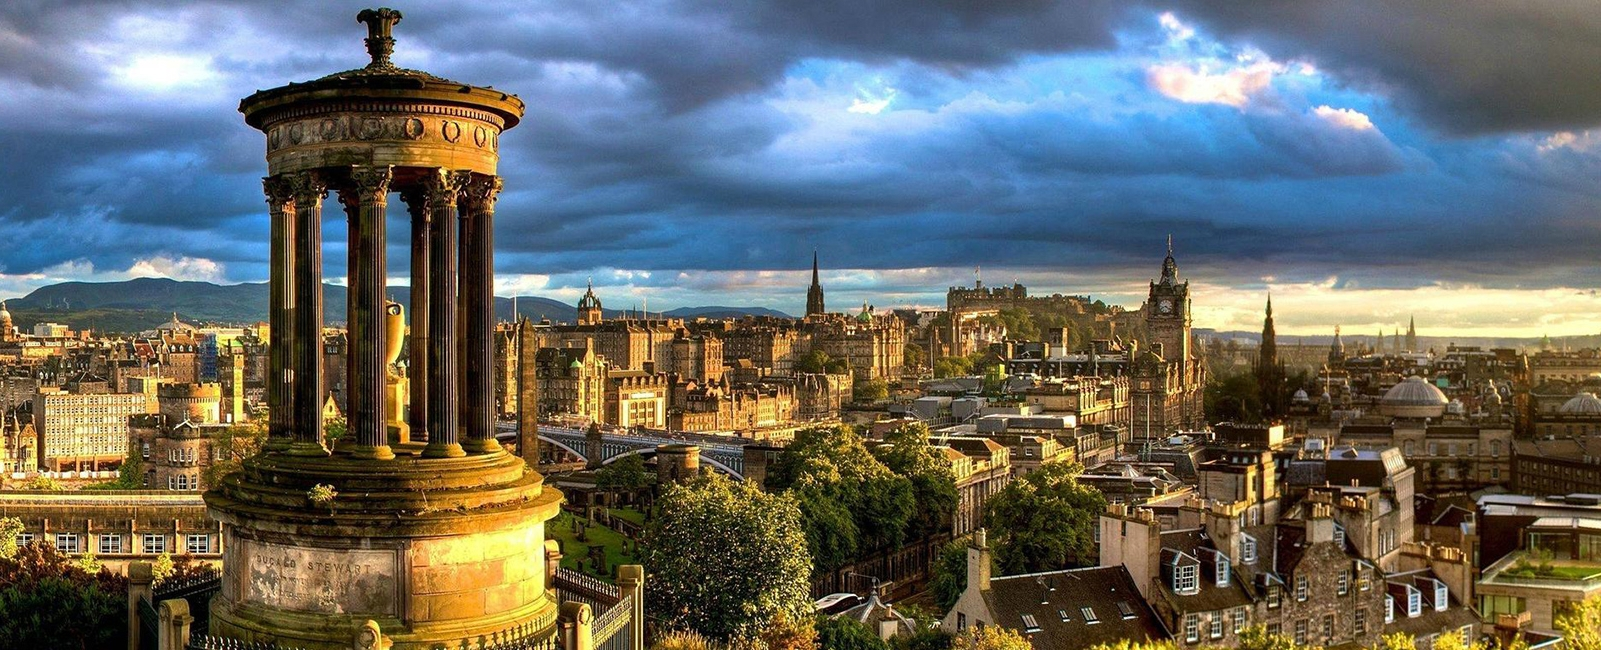 Edinburgh, Scotland Cityscape